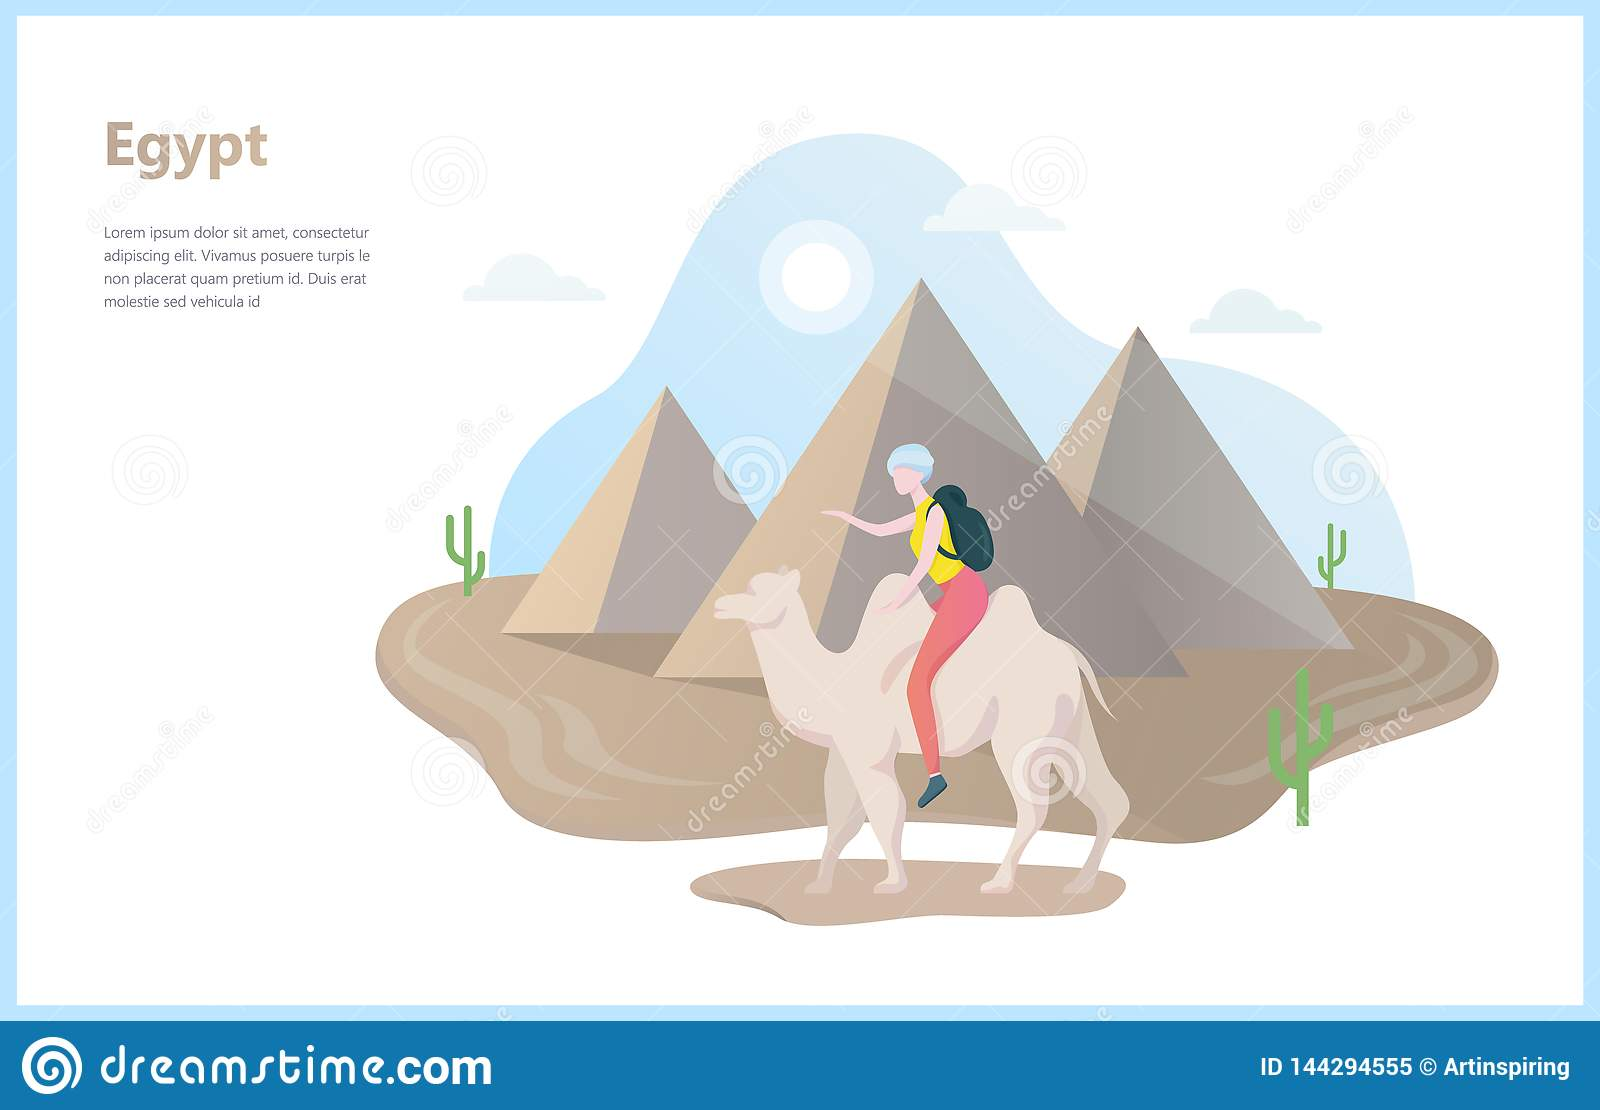 Tourism In Egypt Concept Pyramid And Ancient History Stock Vector Illustration Of Icon Destination 144294555